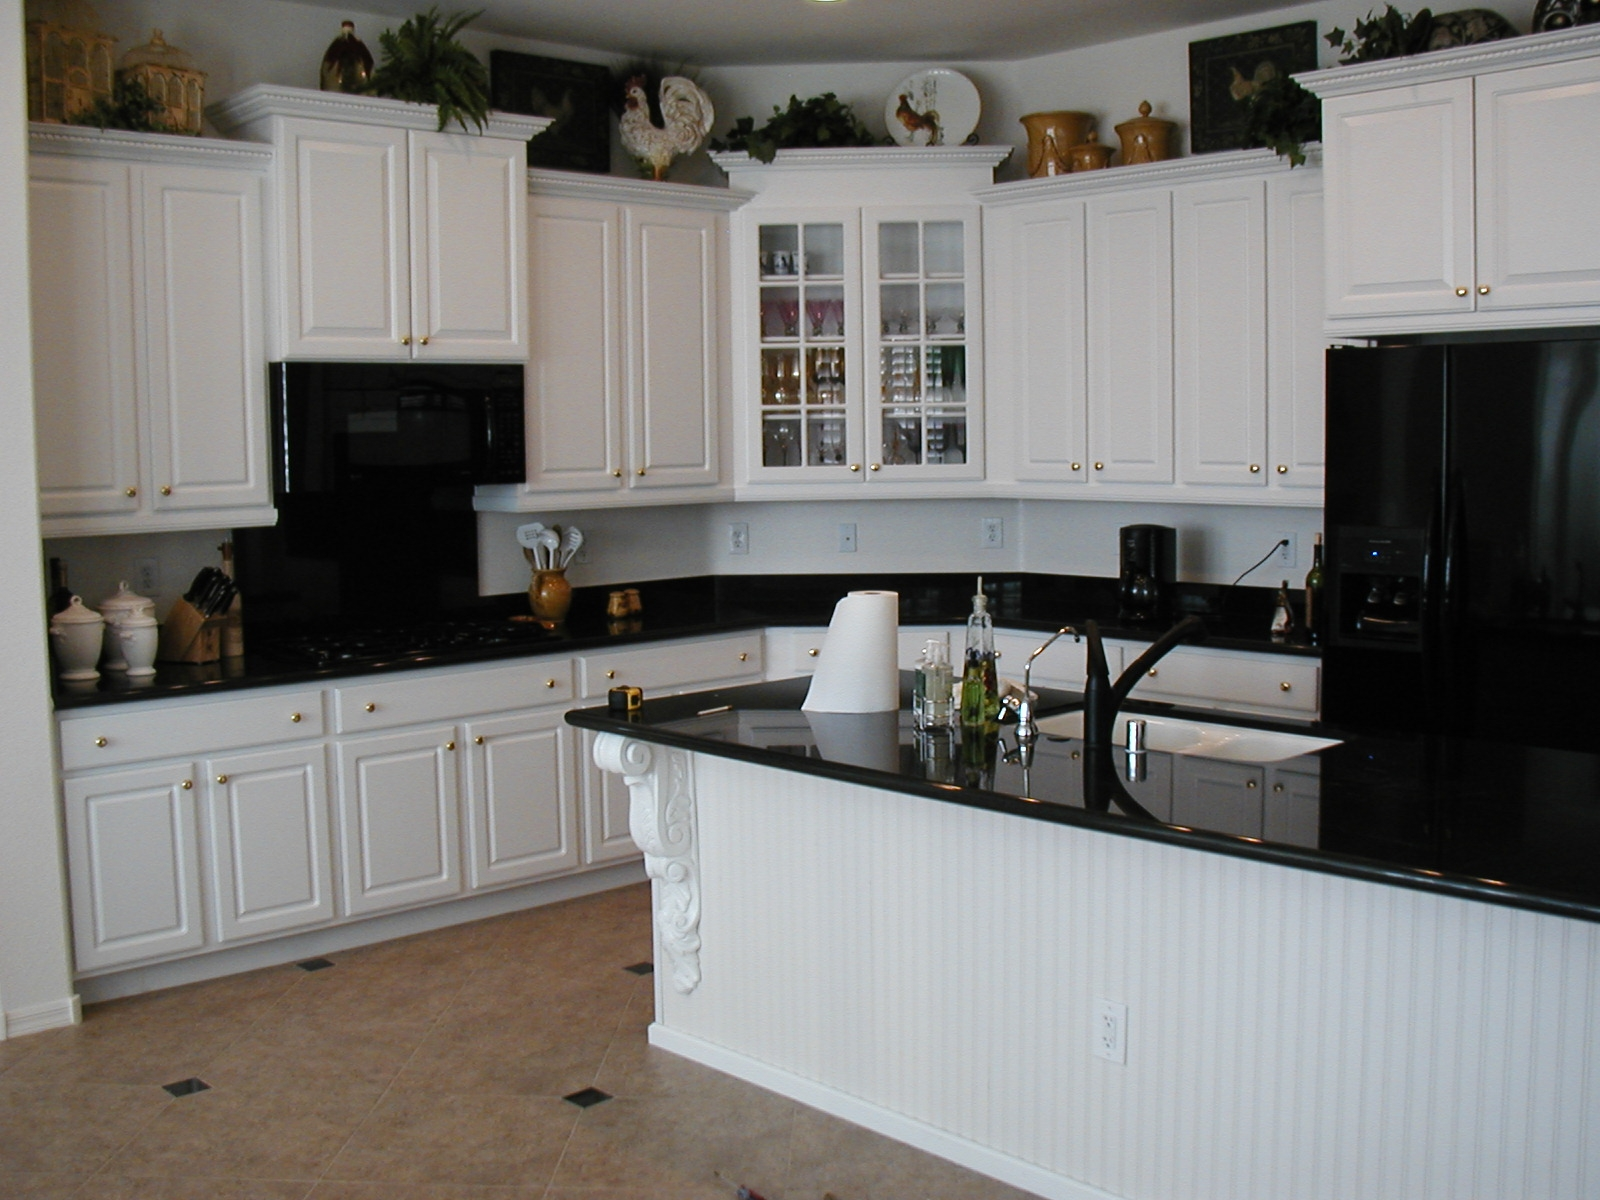 kitchen white cabinets dark backsplash kitchen with white cabinets kitchen white cabinets dark backsplash photo 3